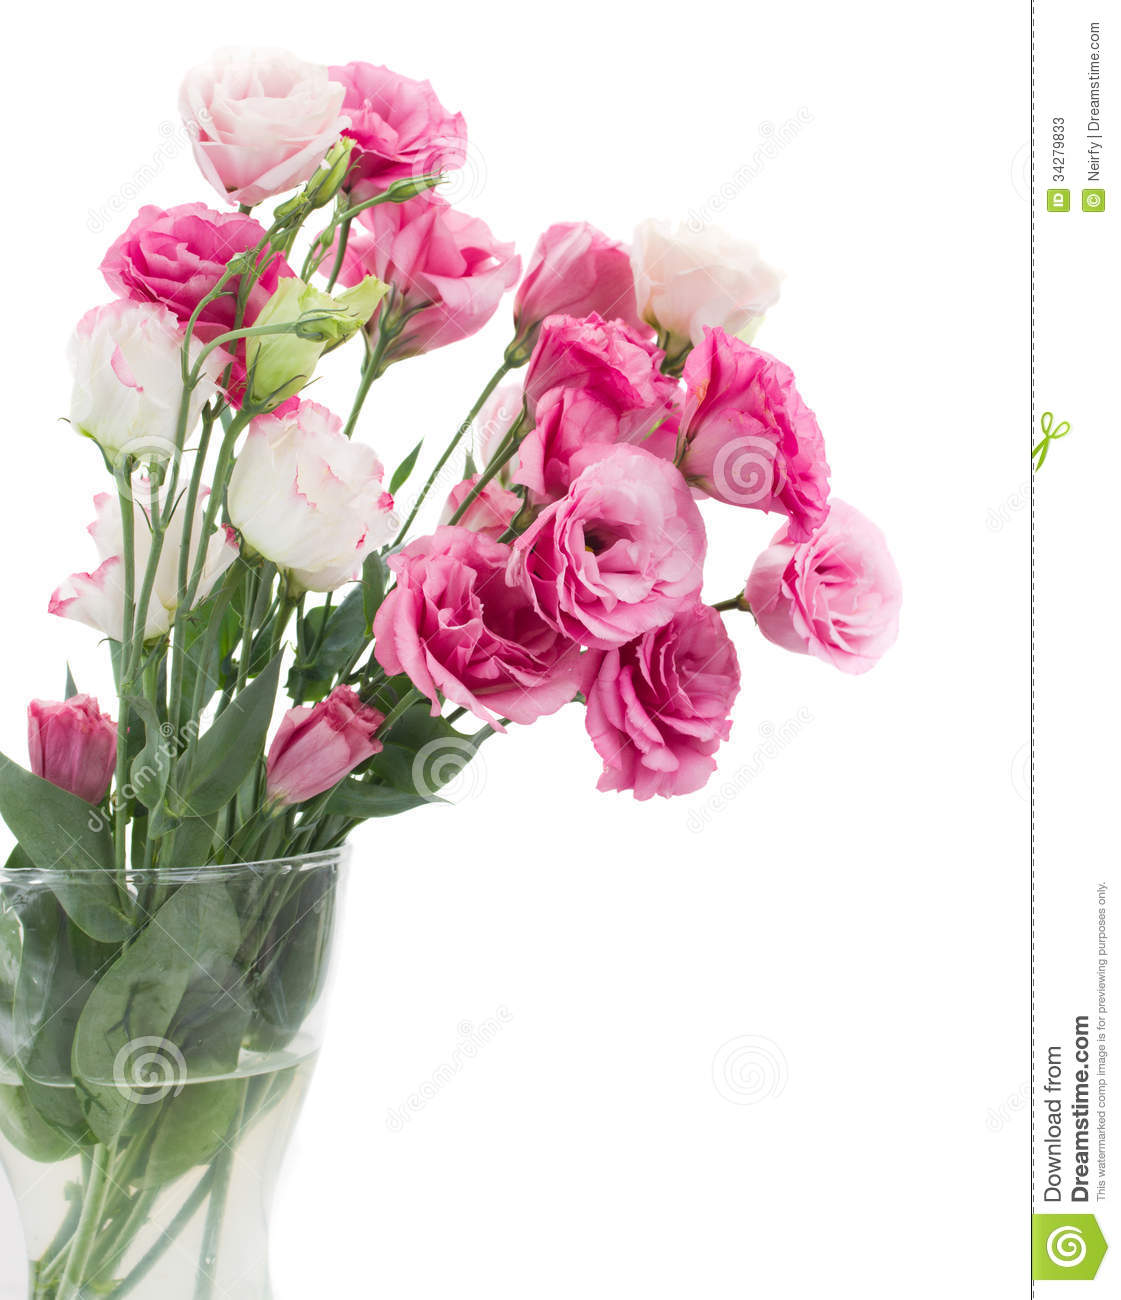 Pink Eustoma Flowers In Vase Stock Photos  Image 34279833